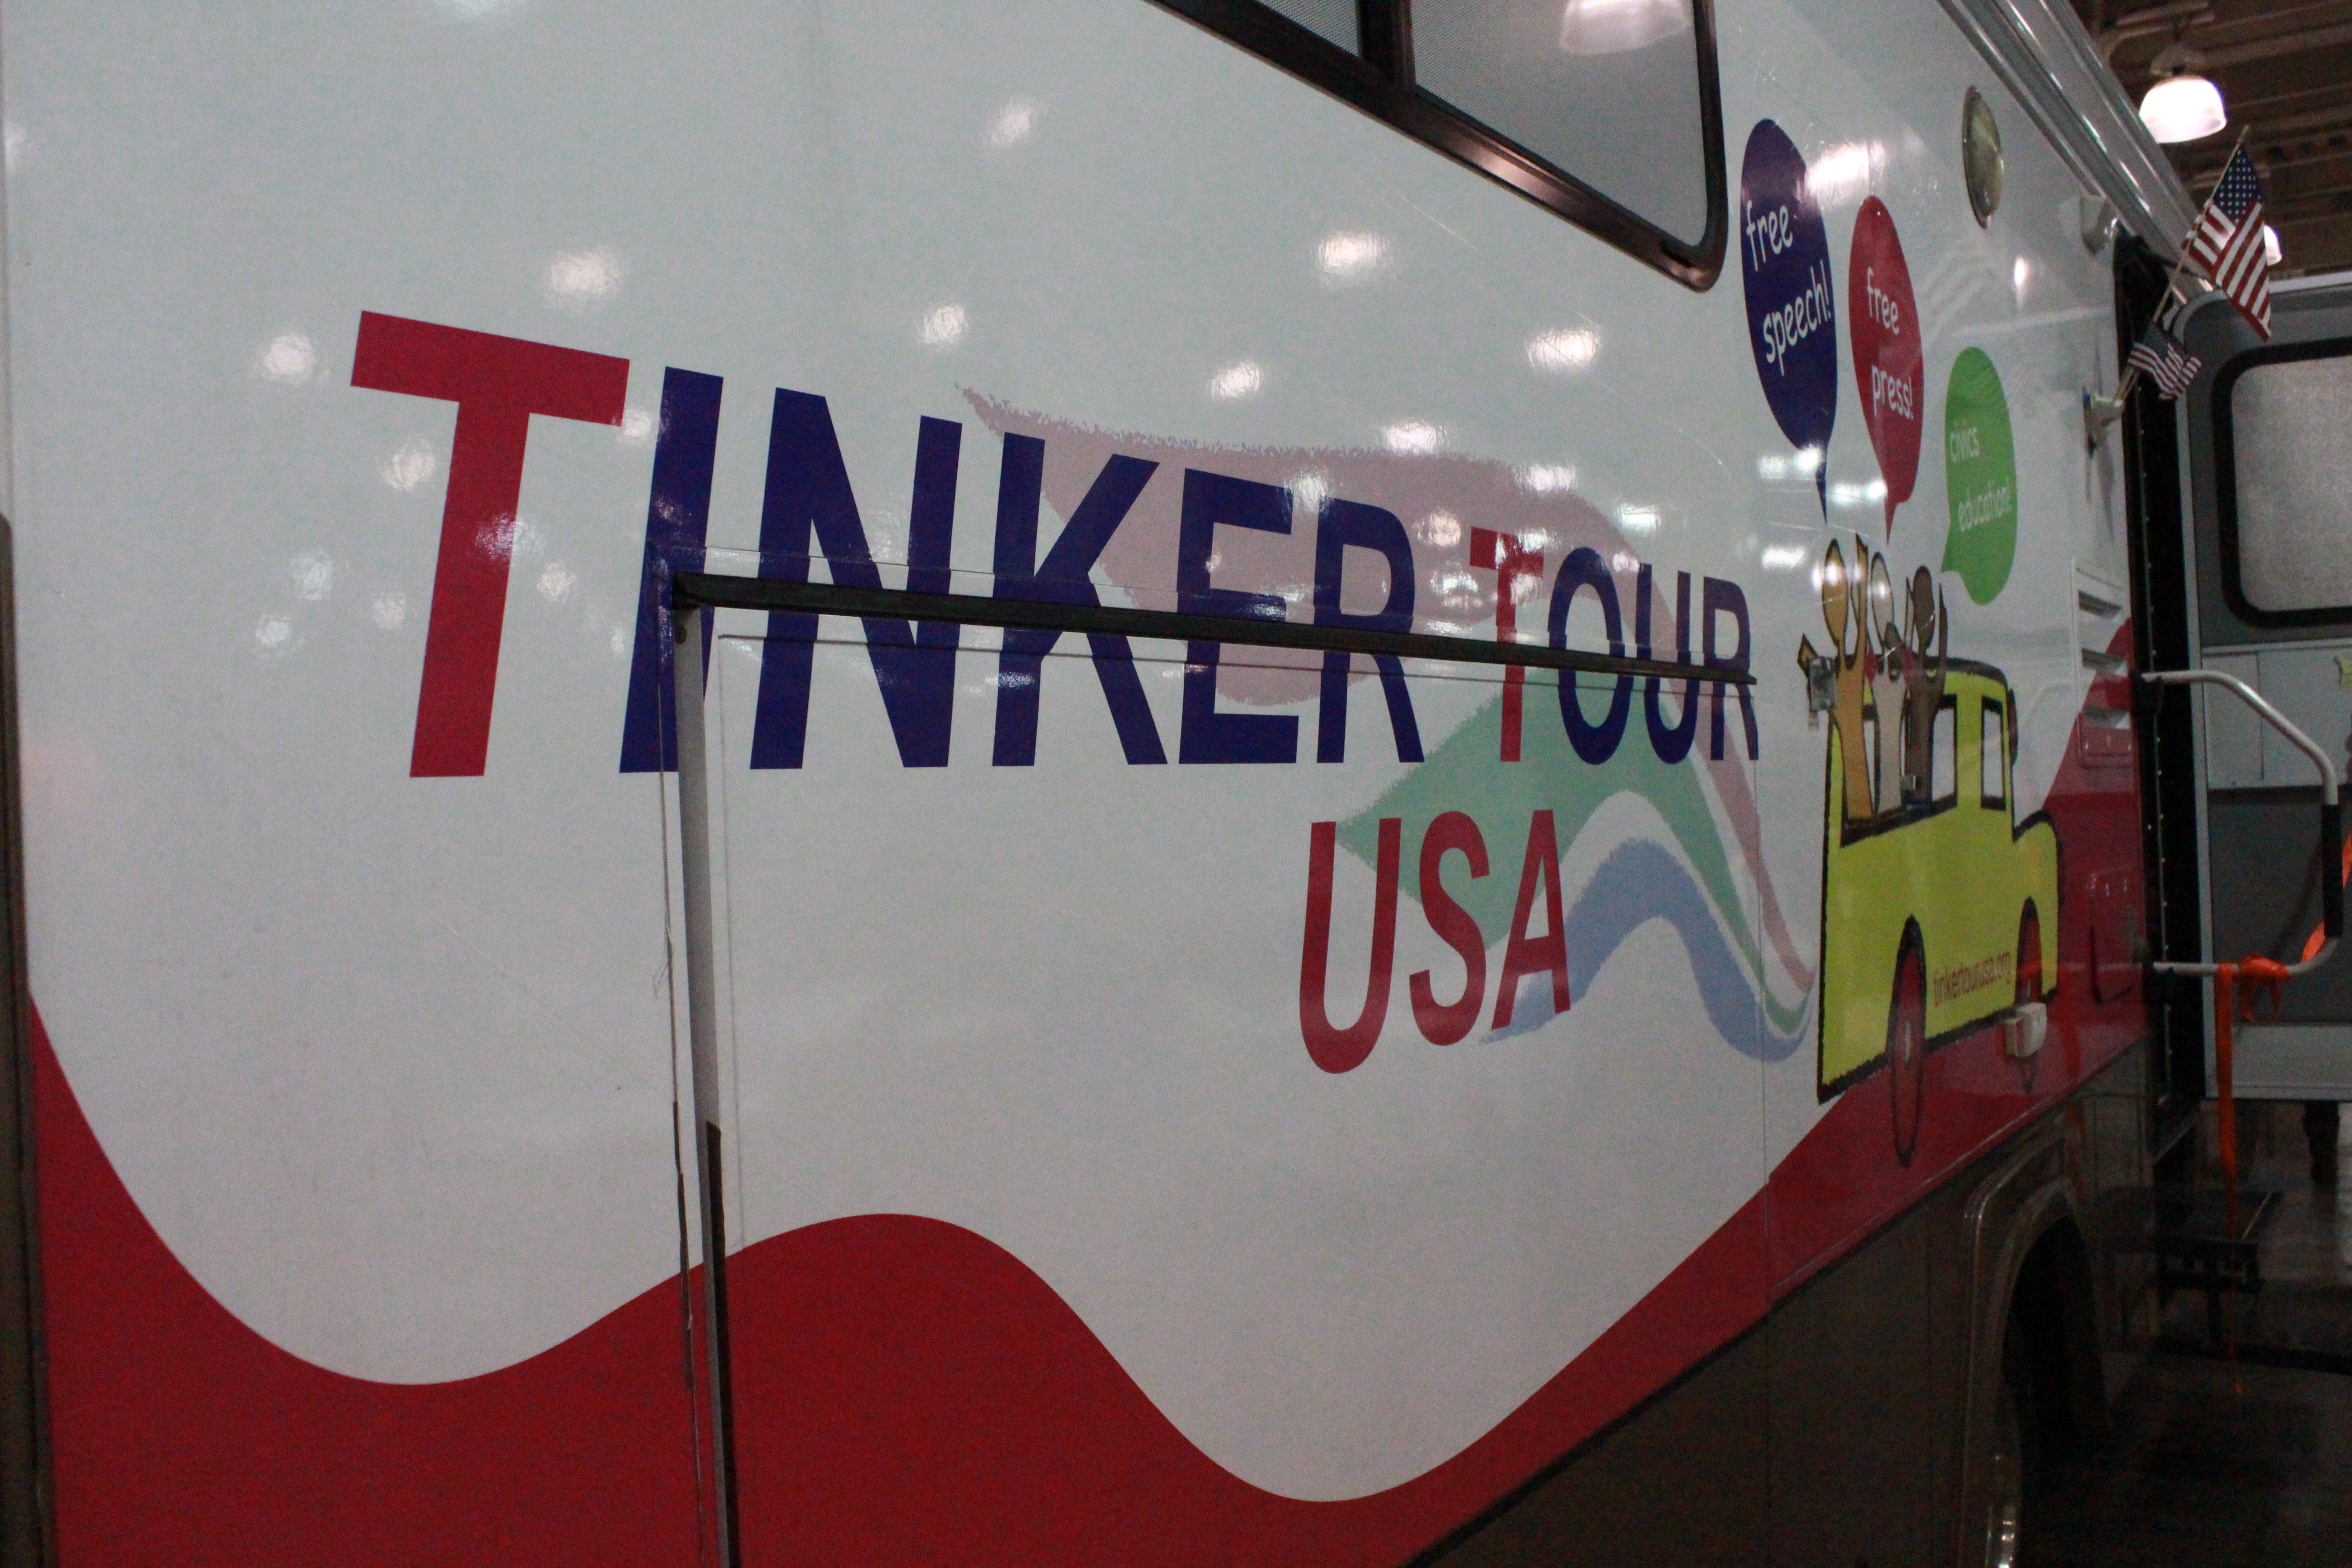 The Tinker Tour USA brought their personalized tour bus to the 2013 JEA/NSPA Convention.